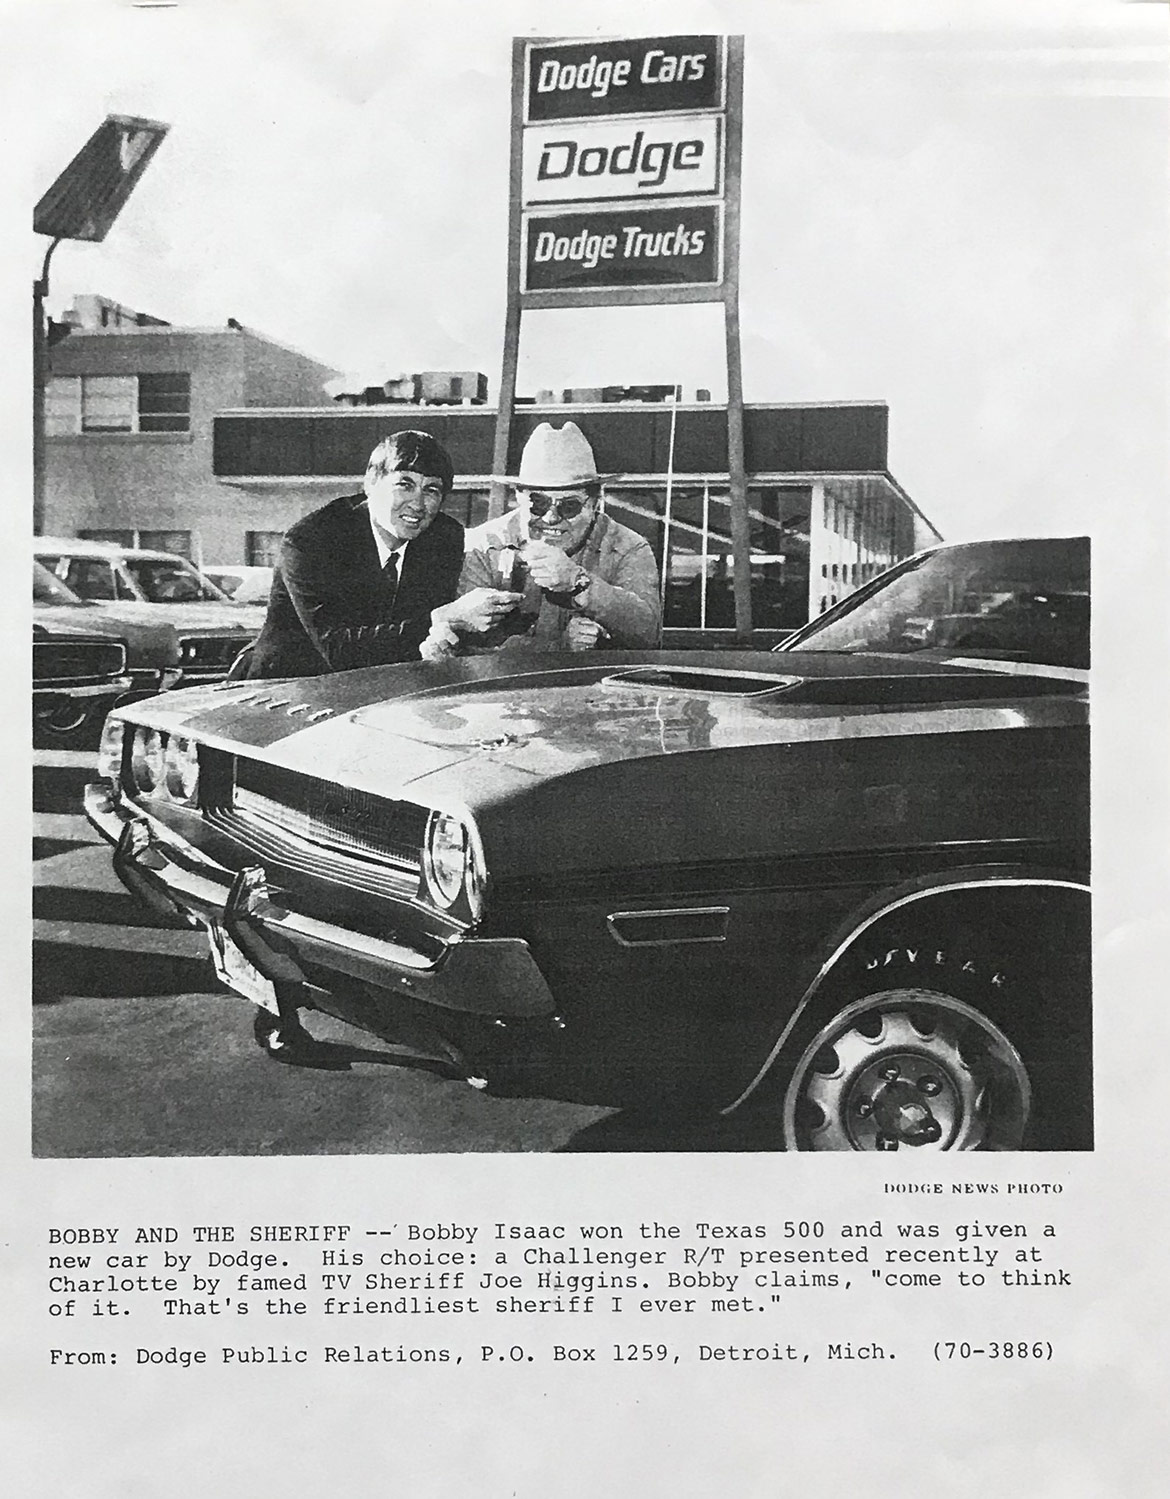 old picture of two men with a car at a dodge dealership